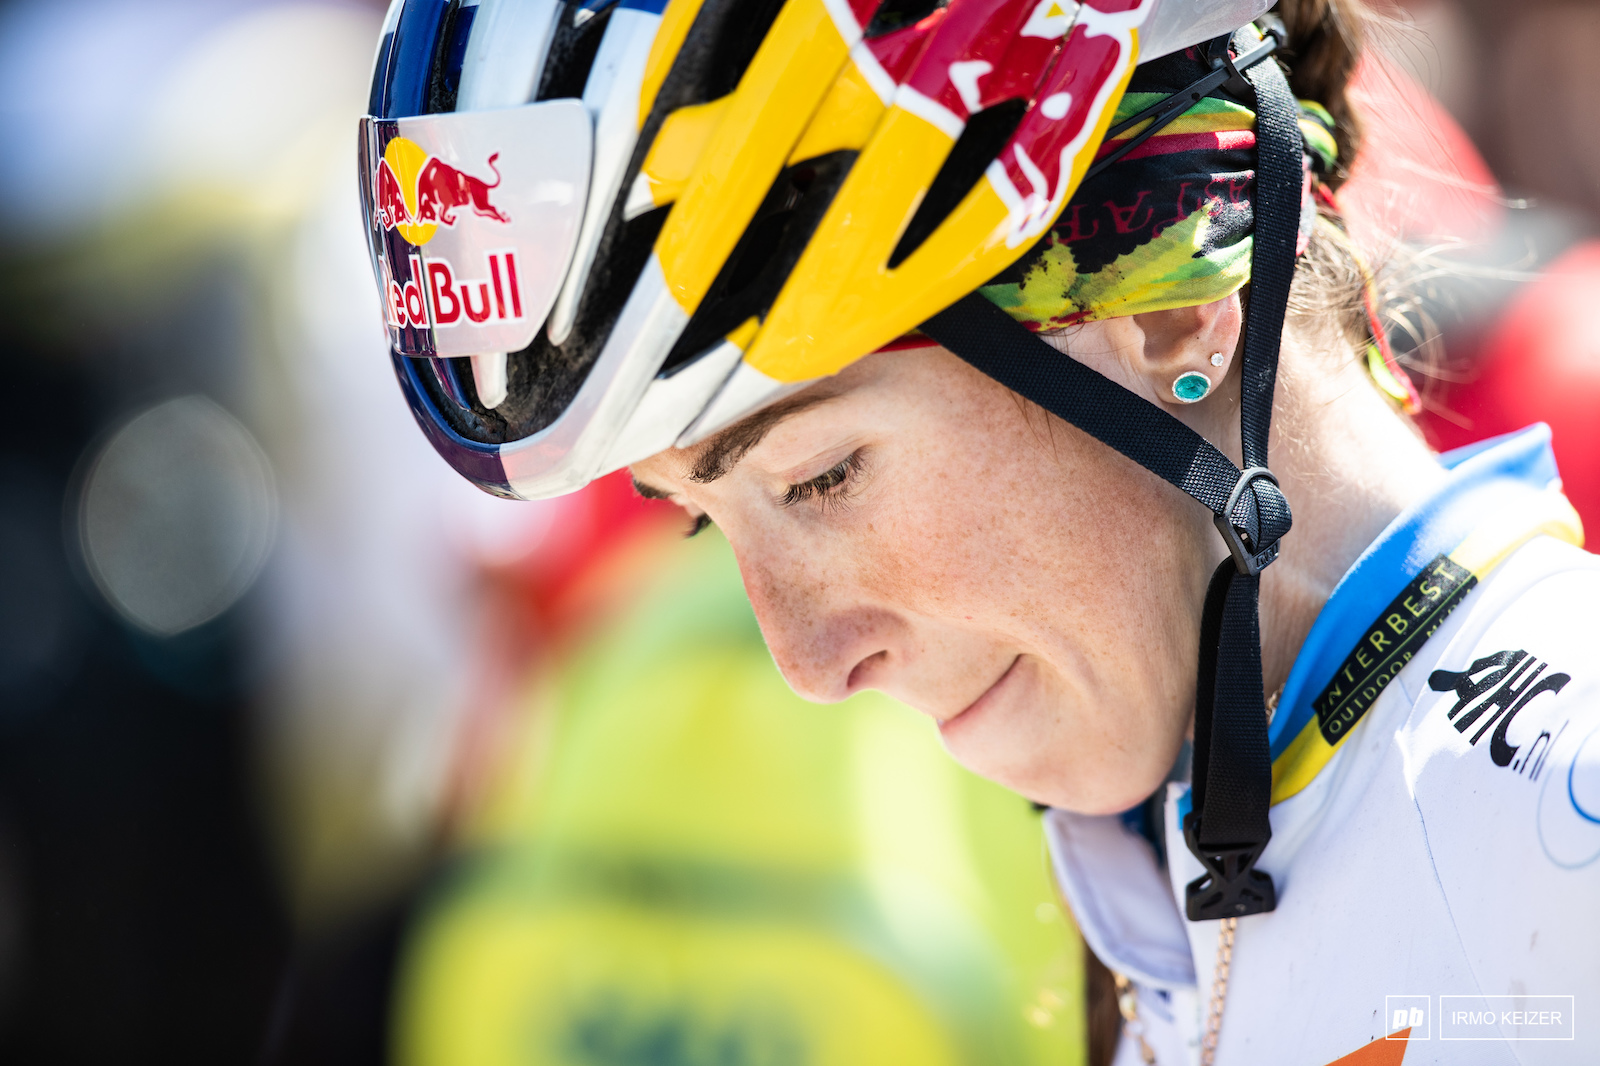 Belomoina crashed on her hip causing pain in an injury she sustained just prior to the season.